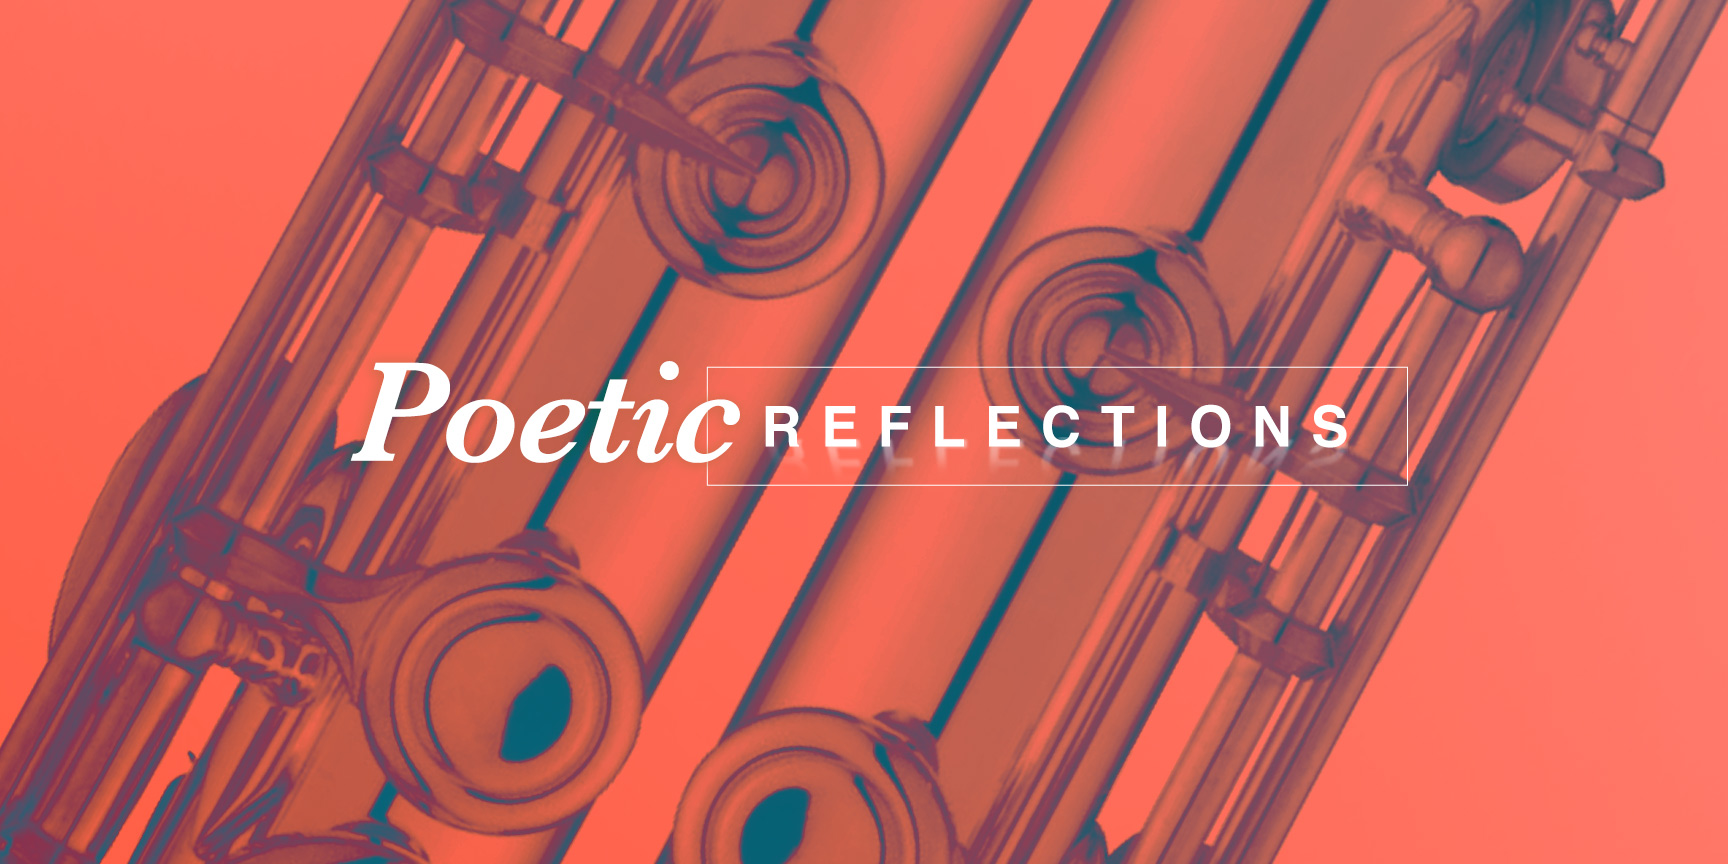 Poetic Reflections concert poster